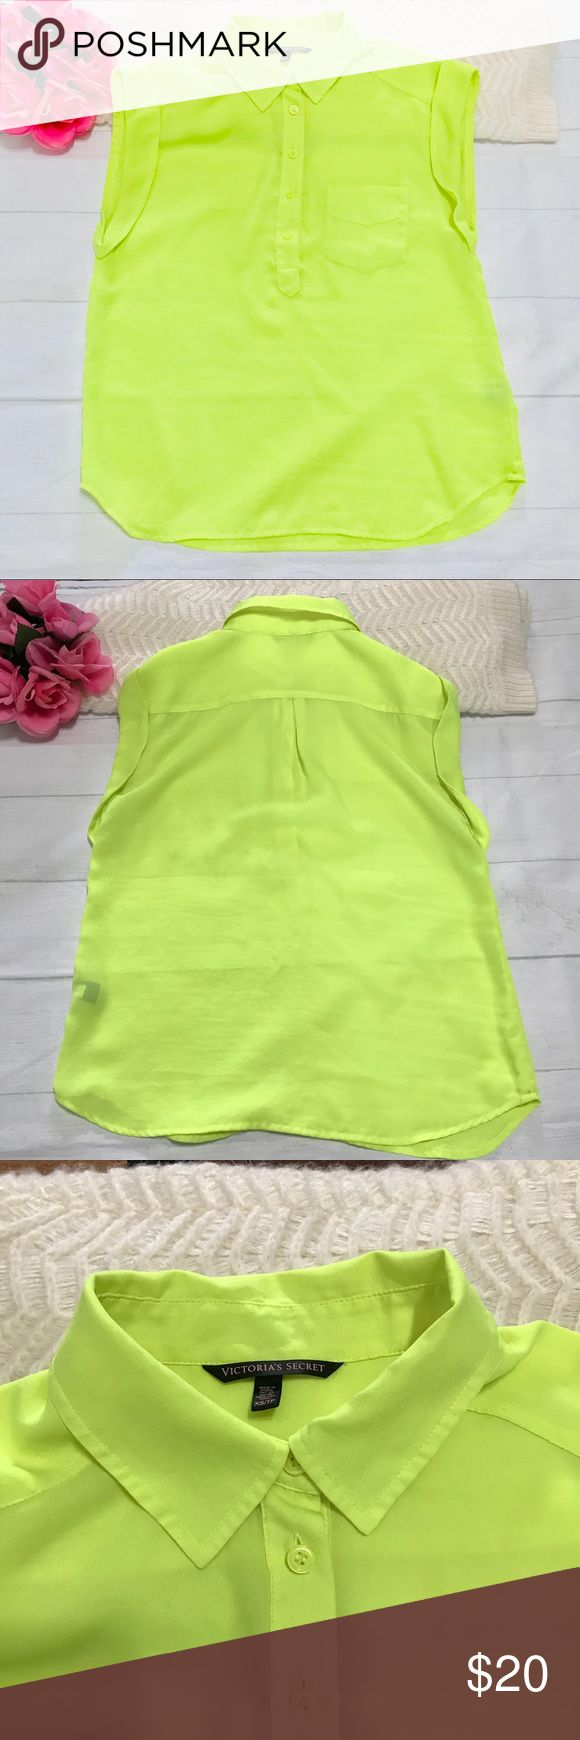 "Victoria's Secret Wo's Neon Top XS Victoria's Secret Wo's Neon Top XS  In excellent condition; lightweight; No damage, hole, stains or rips;  Flat Measurements: Shoulder to shoulder: 19"" Armpit to armpit: 17"" Waist: 17"" Length from shoulder: 27"" Note: Measurements were taken with the item laying flat on an even surface using a steel measuring tape and approximation. Please allow 0.5 to 1.0 inch margin of error.  Materials: 100% polyester   Item#57 Victoria's Secret Tops Blouses"